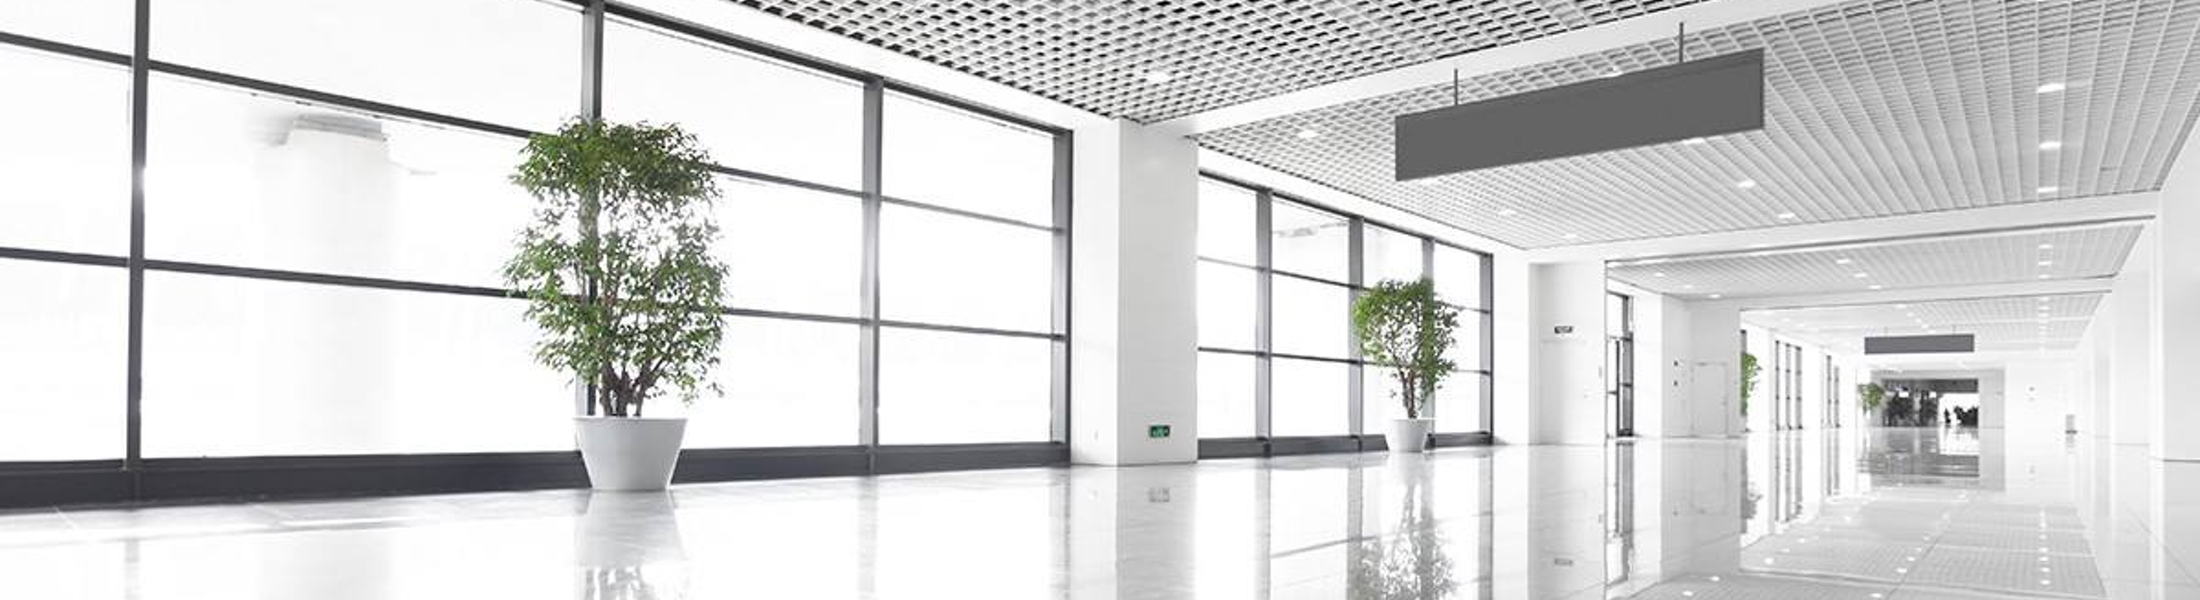 INTEGRATED FACILITIES SERVICES - WE KNOW COMMERCIAL CLEANING